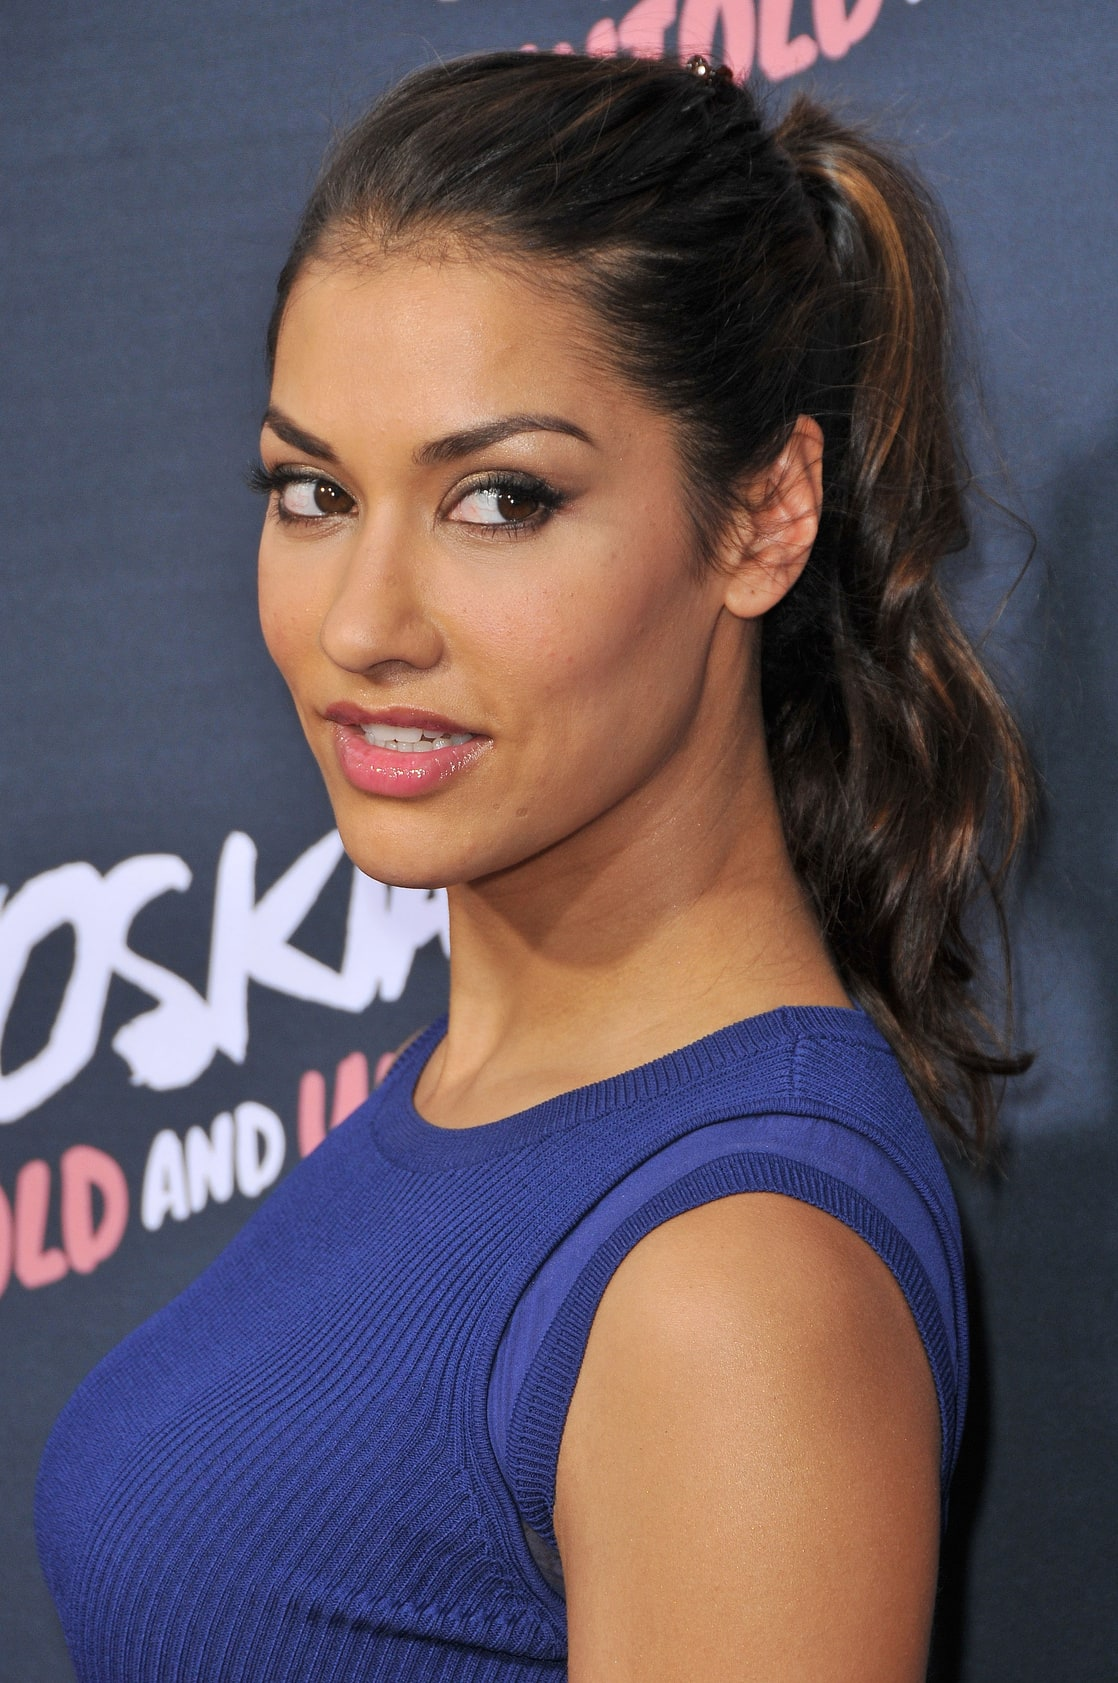 janina gavankar - photo #18